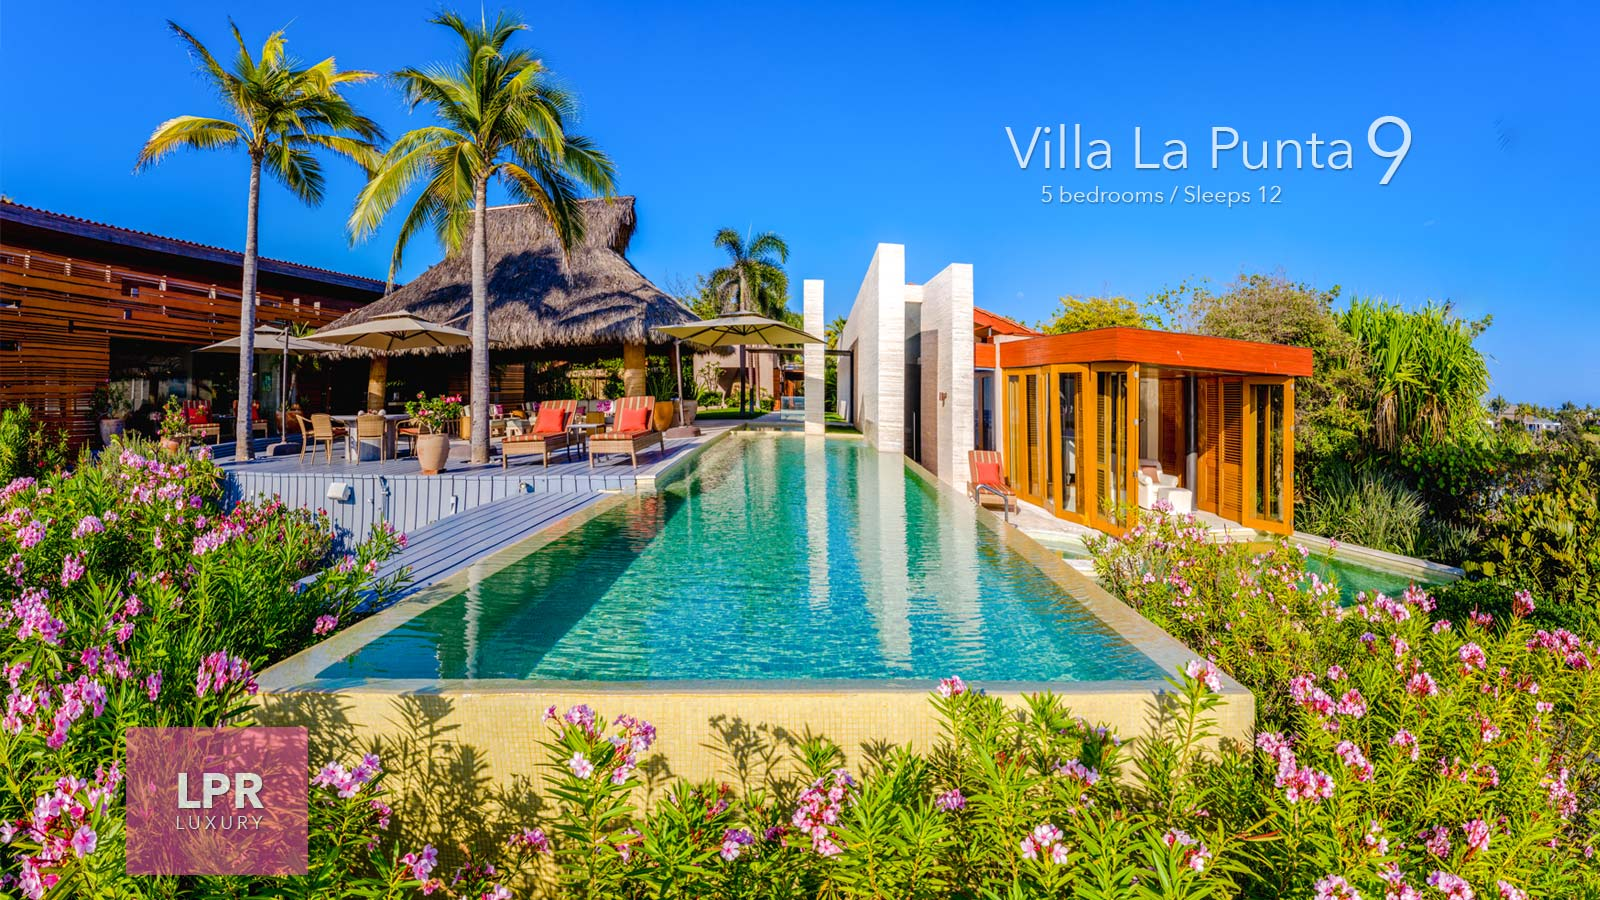 Villa La Punta 9 - Luxury beachfront vacation rental villa at the Punta Mita Resort, Riviera Nayarit, Mexico